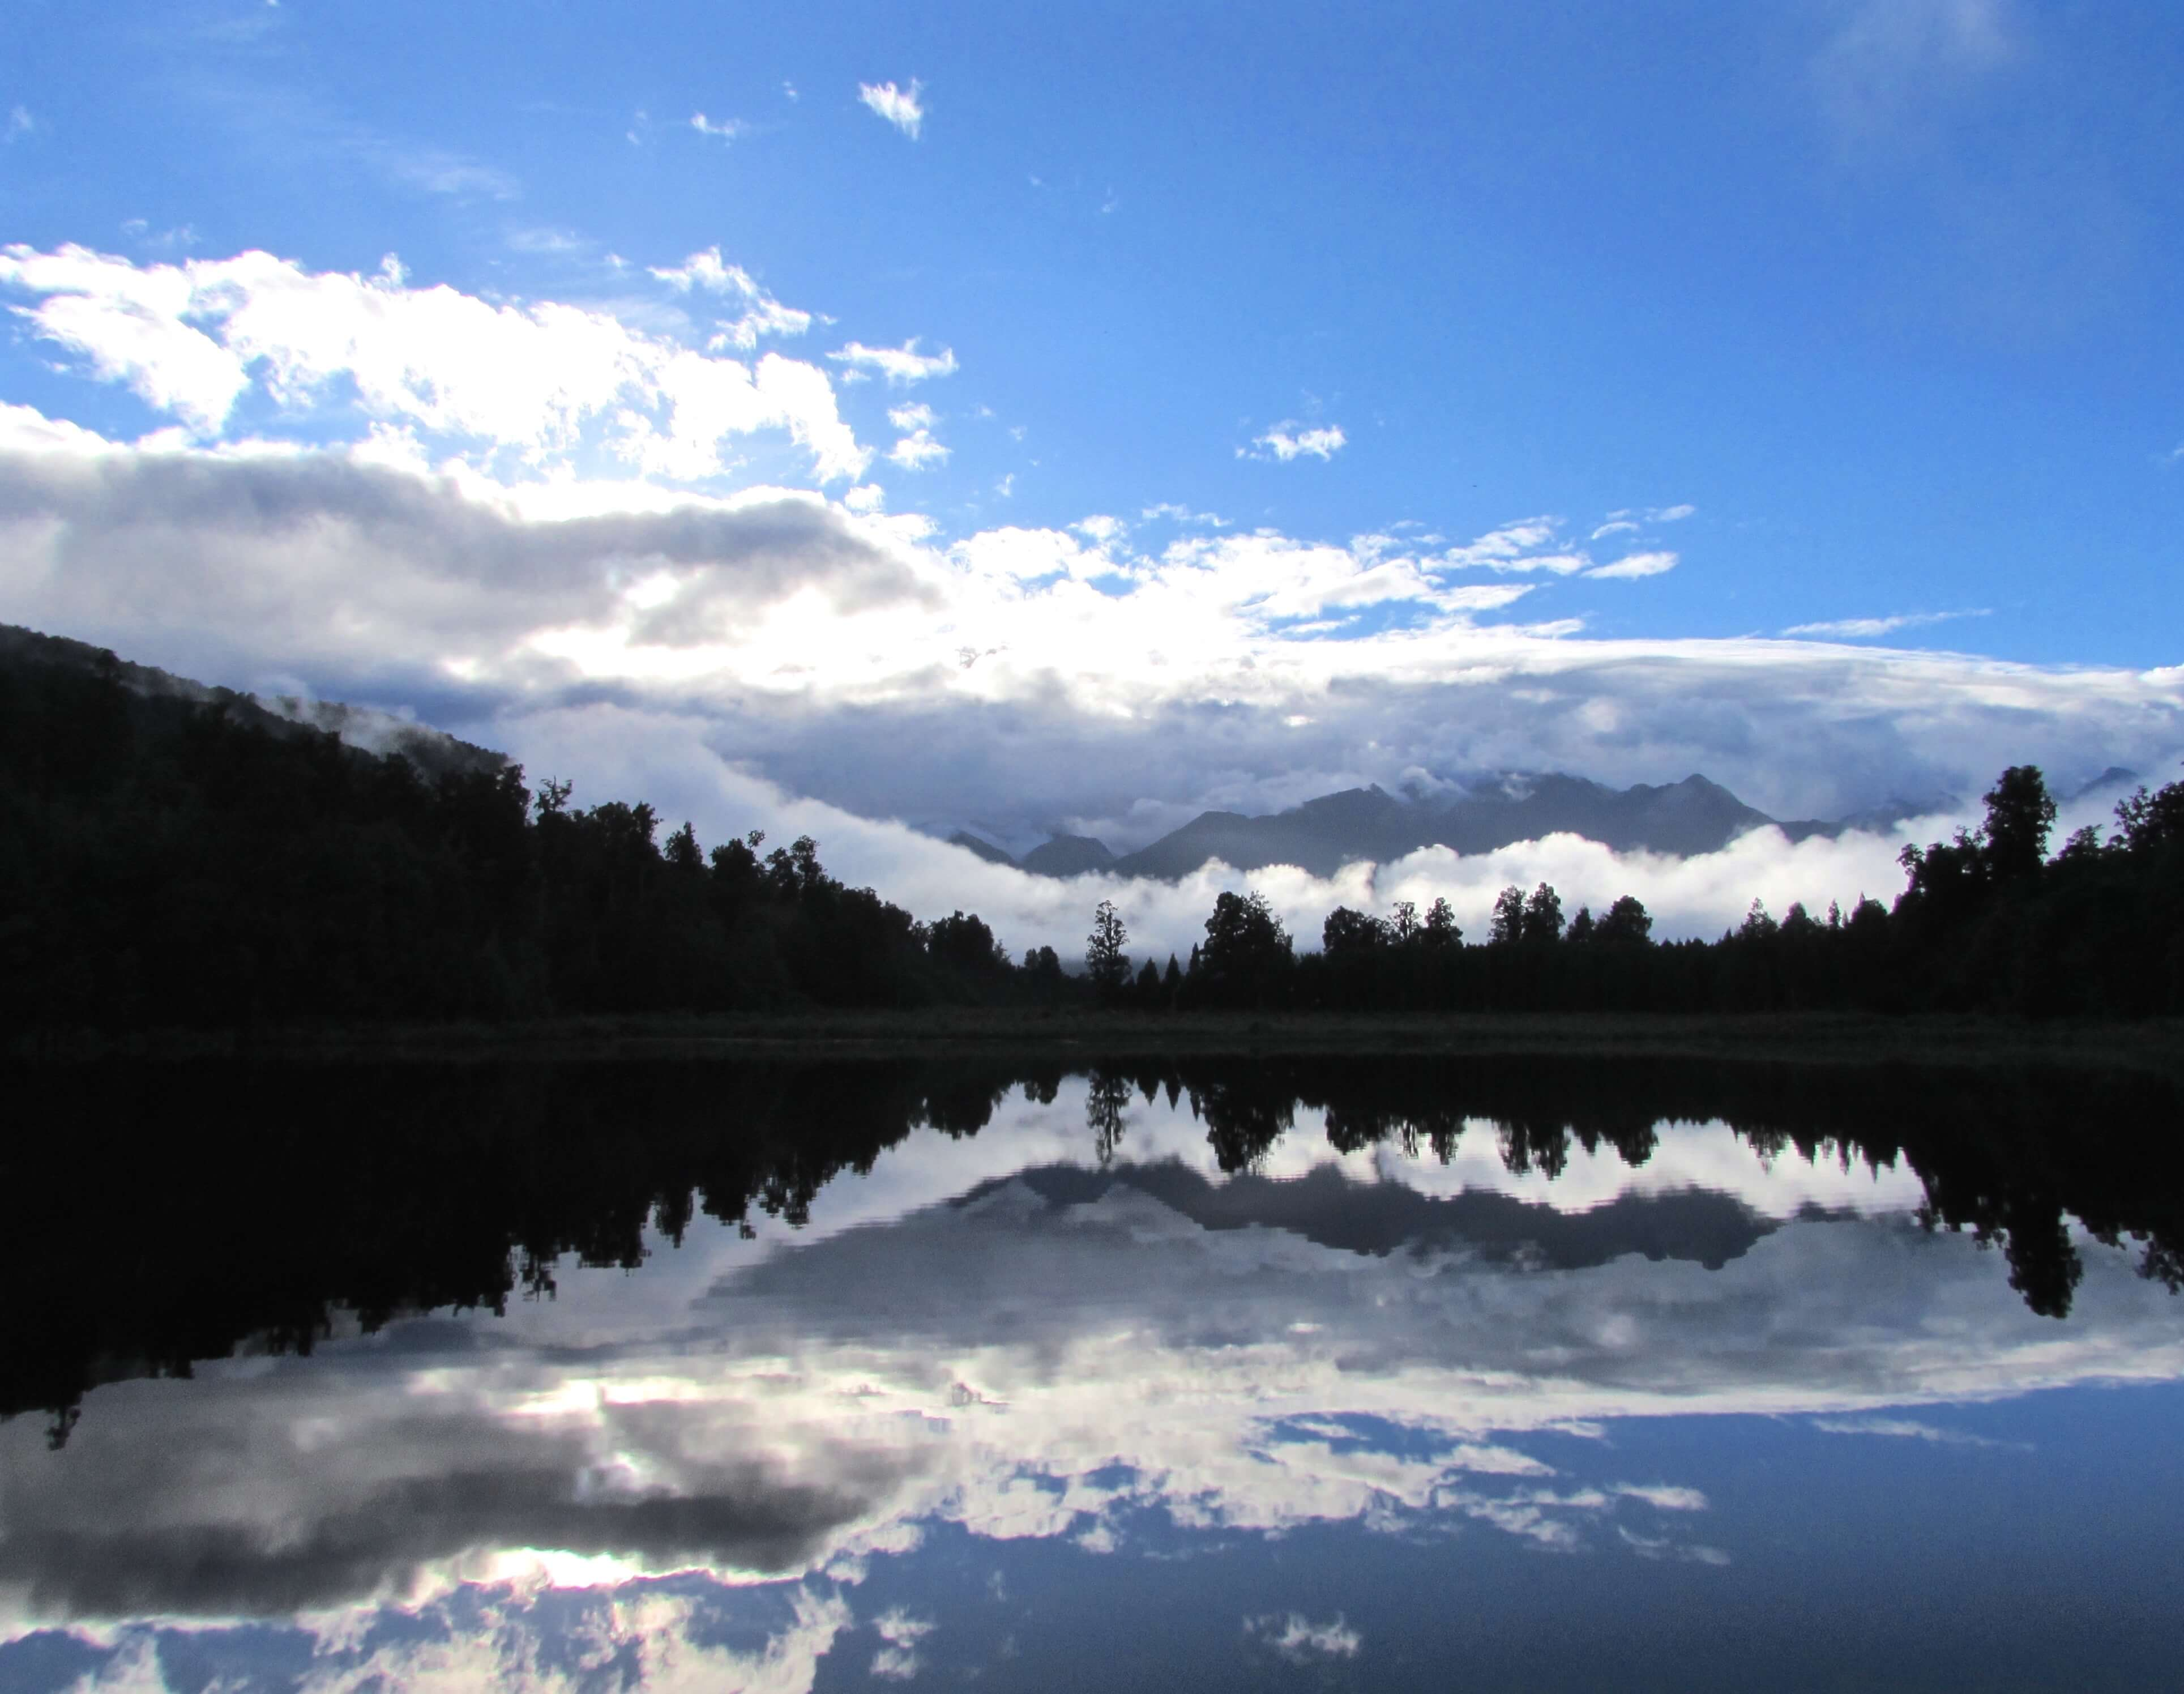 Lake Matheson reflecting trees and mountains